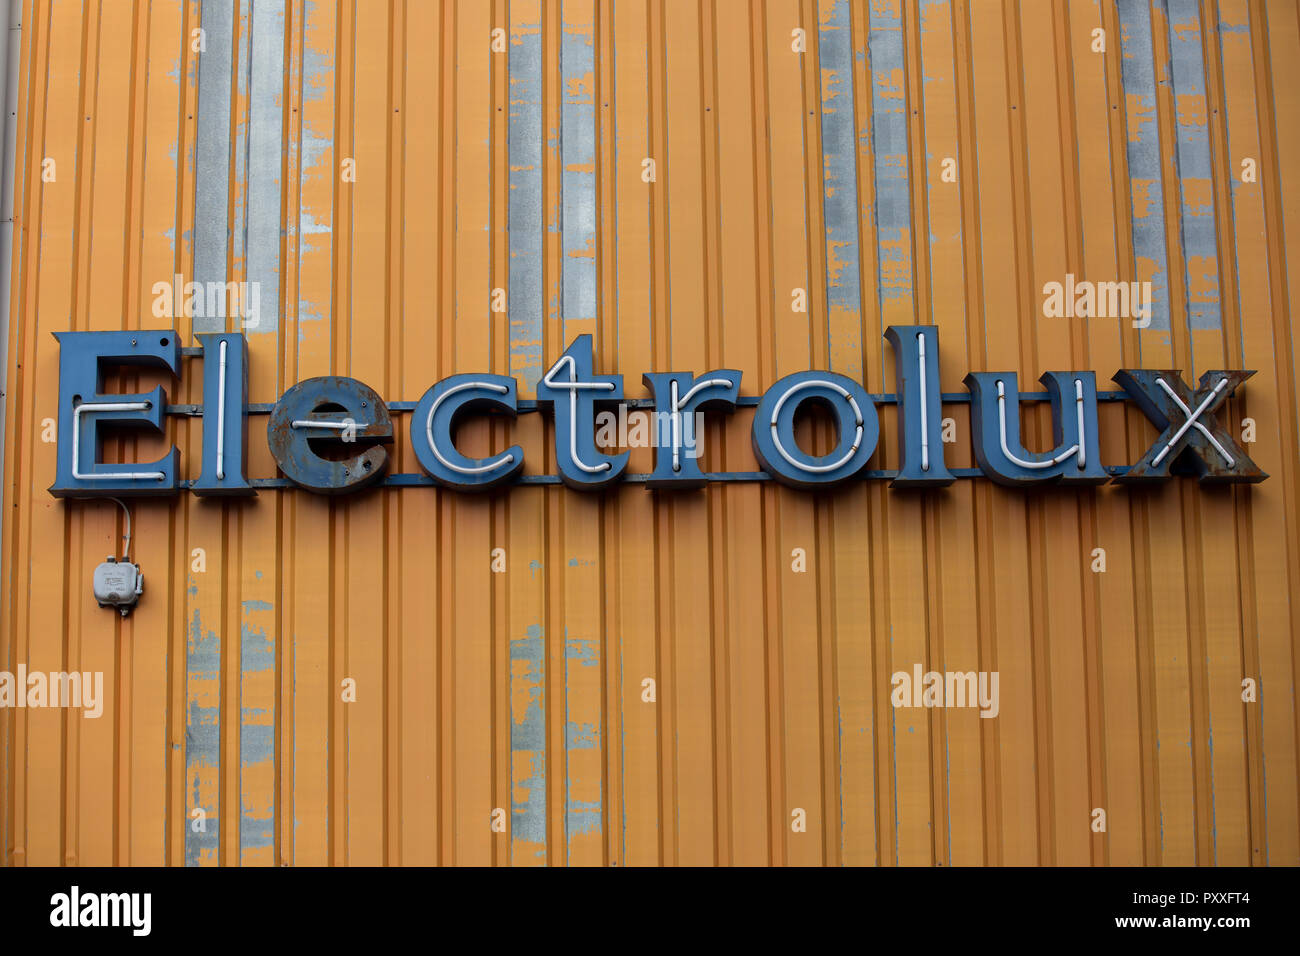 Electrolux, sign in Lapland in northern Sweden of Swedish multinational household appliance manufacturer, headquartered in Stockholm, Sweden - Stock Image